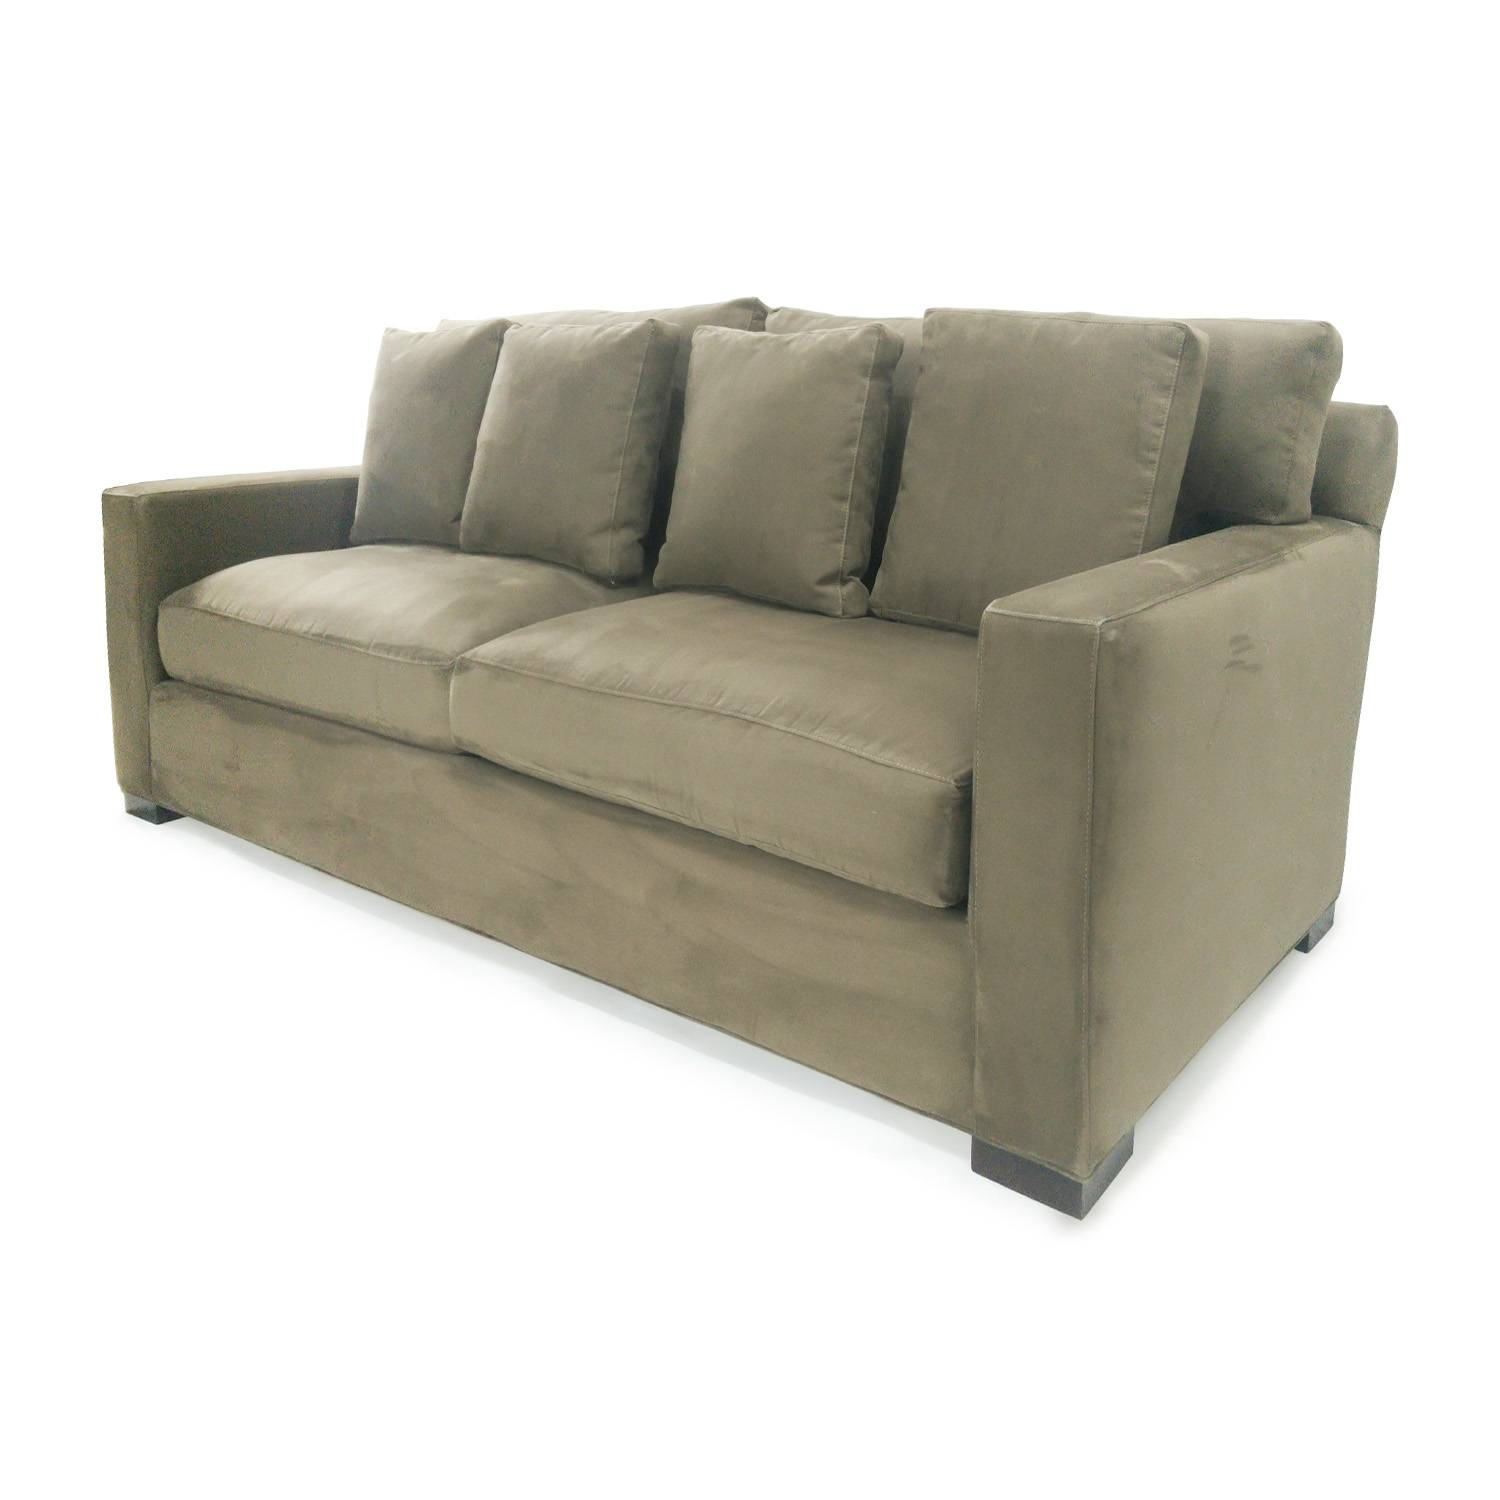 72% Off   Crate And Barrel Crate & Barrel Axis Ii Seat Sofa / Sofas Regarding Crate And Barrel Sofa Sleepers (Photo 3 of 15)